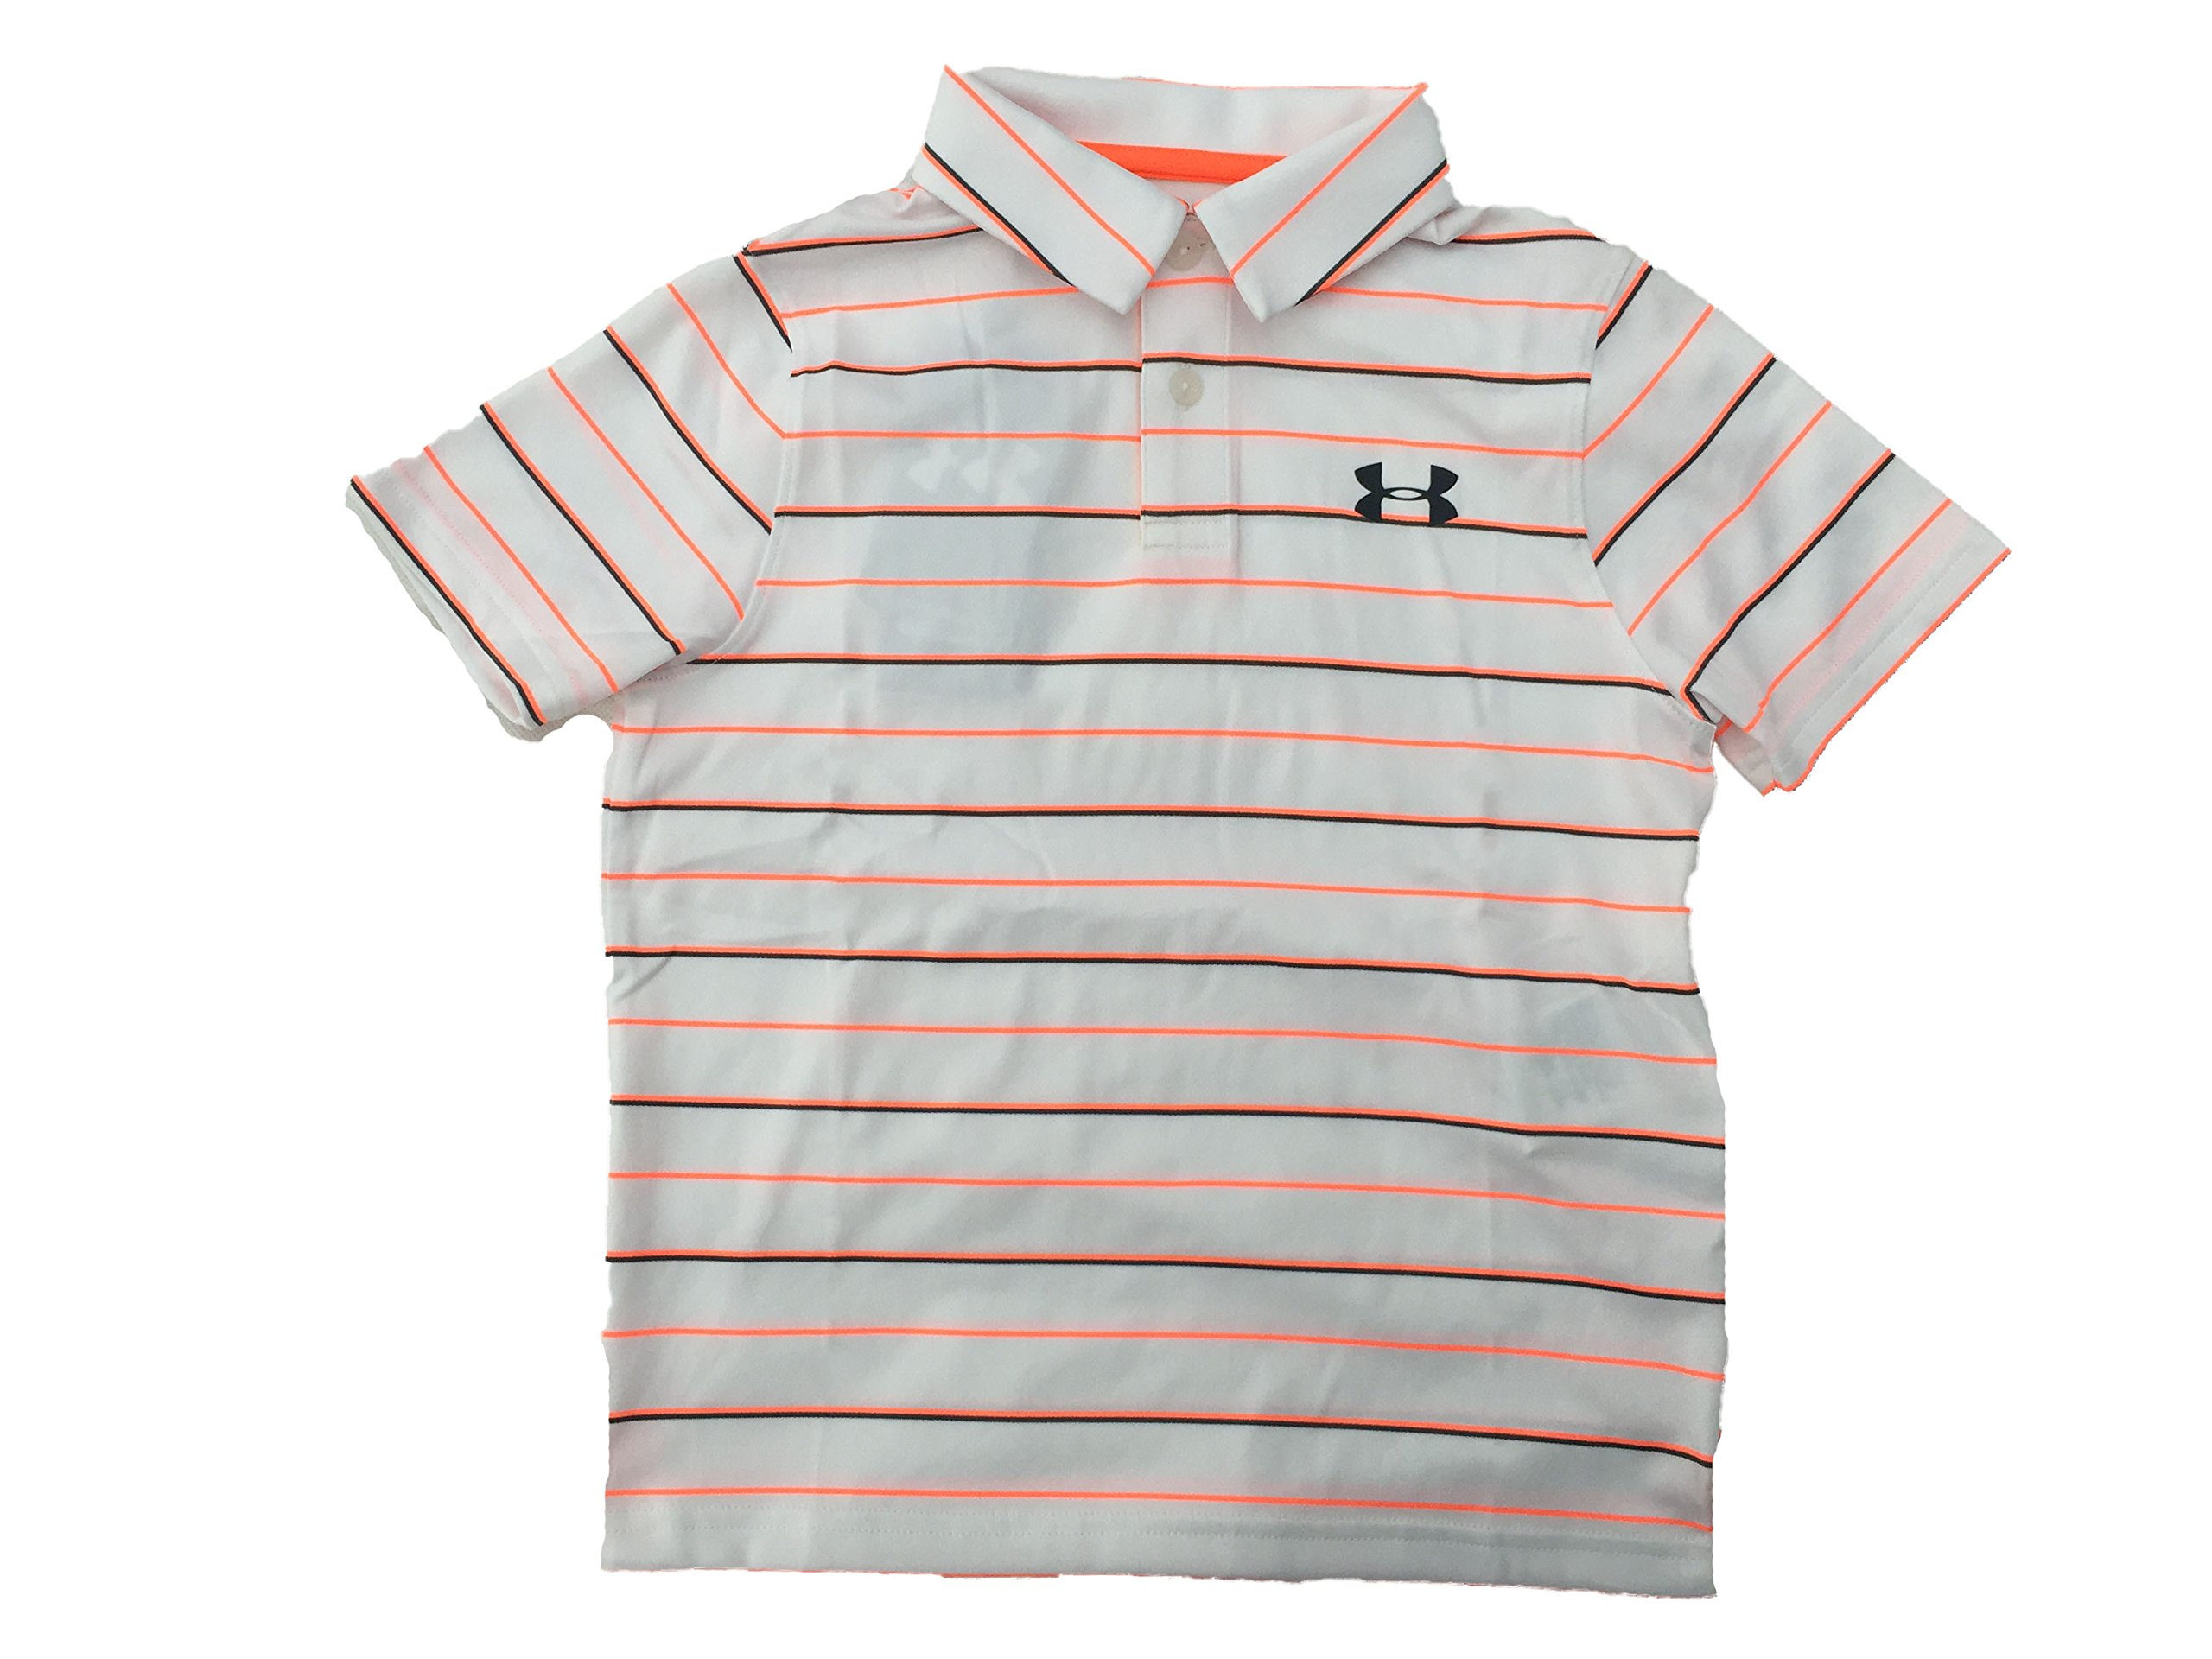 Under Armour Boy`s Threadborne Bunker Golf Polo Shirt (White(1298097-101)/Max Orange, Youth Small) by Under Armour